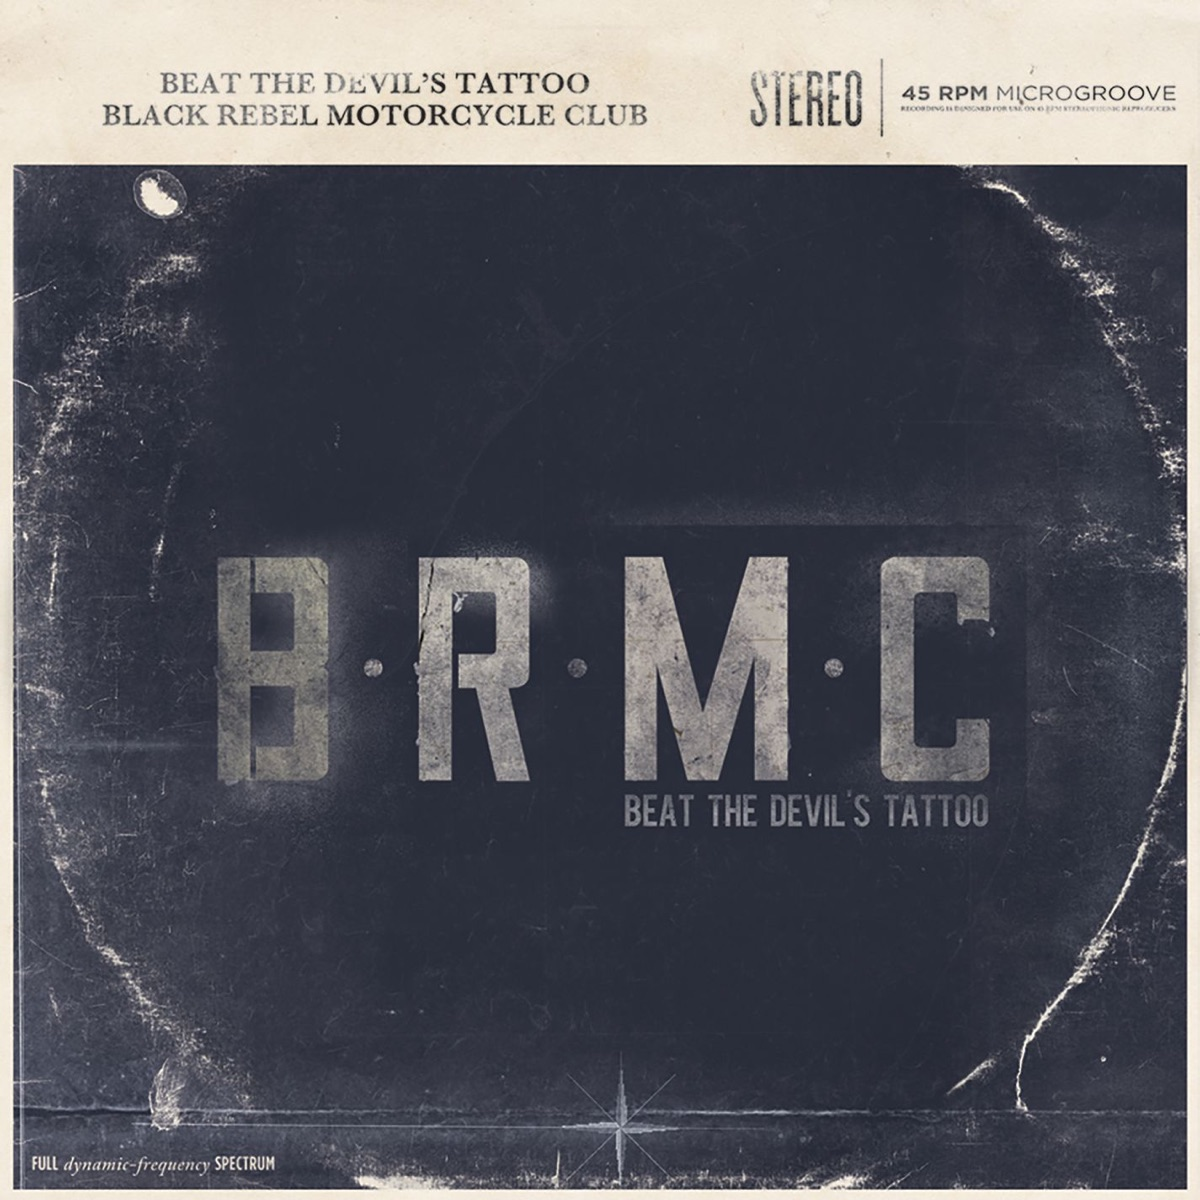 Beat the Devils Tattoo Black Rebel Motorcycle Club CD cover